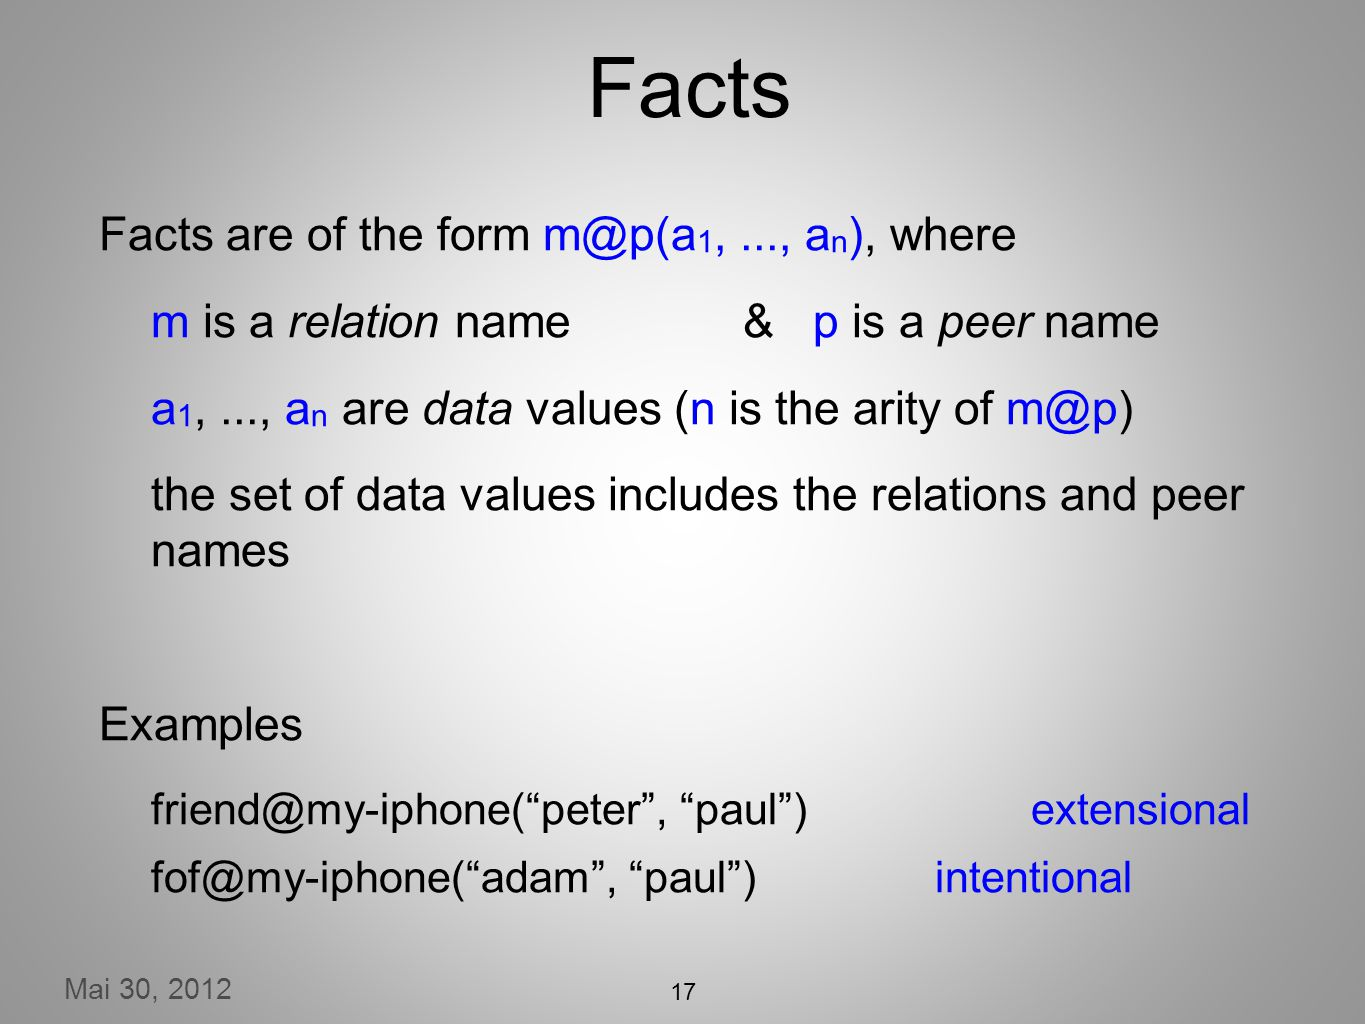 Mai 30, 2012 17 Facts Facts are of the form m@p(a 1,..., a n ), where m is a relation name& p is a peer name a 1,..., a n are data values (n is the arity of m@p) the set of data values includes the relations and peer names Examples friend@my-iphone(peter, paul) extensional fof@my-iphone(adam, paul) intentional